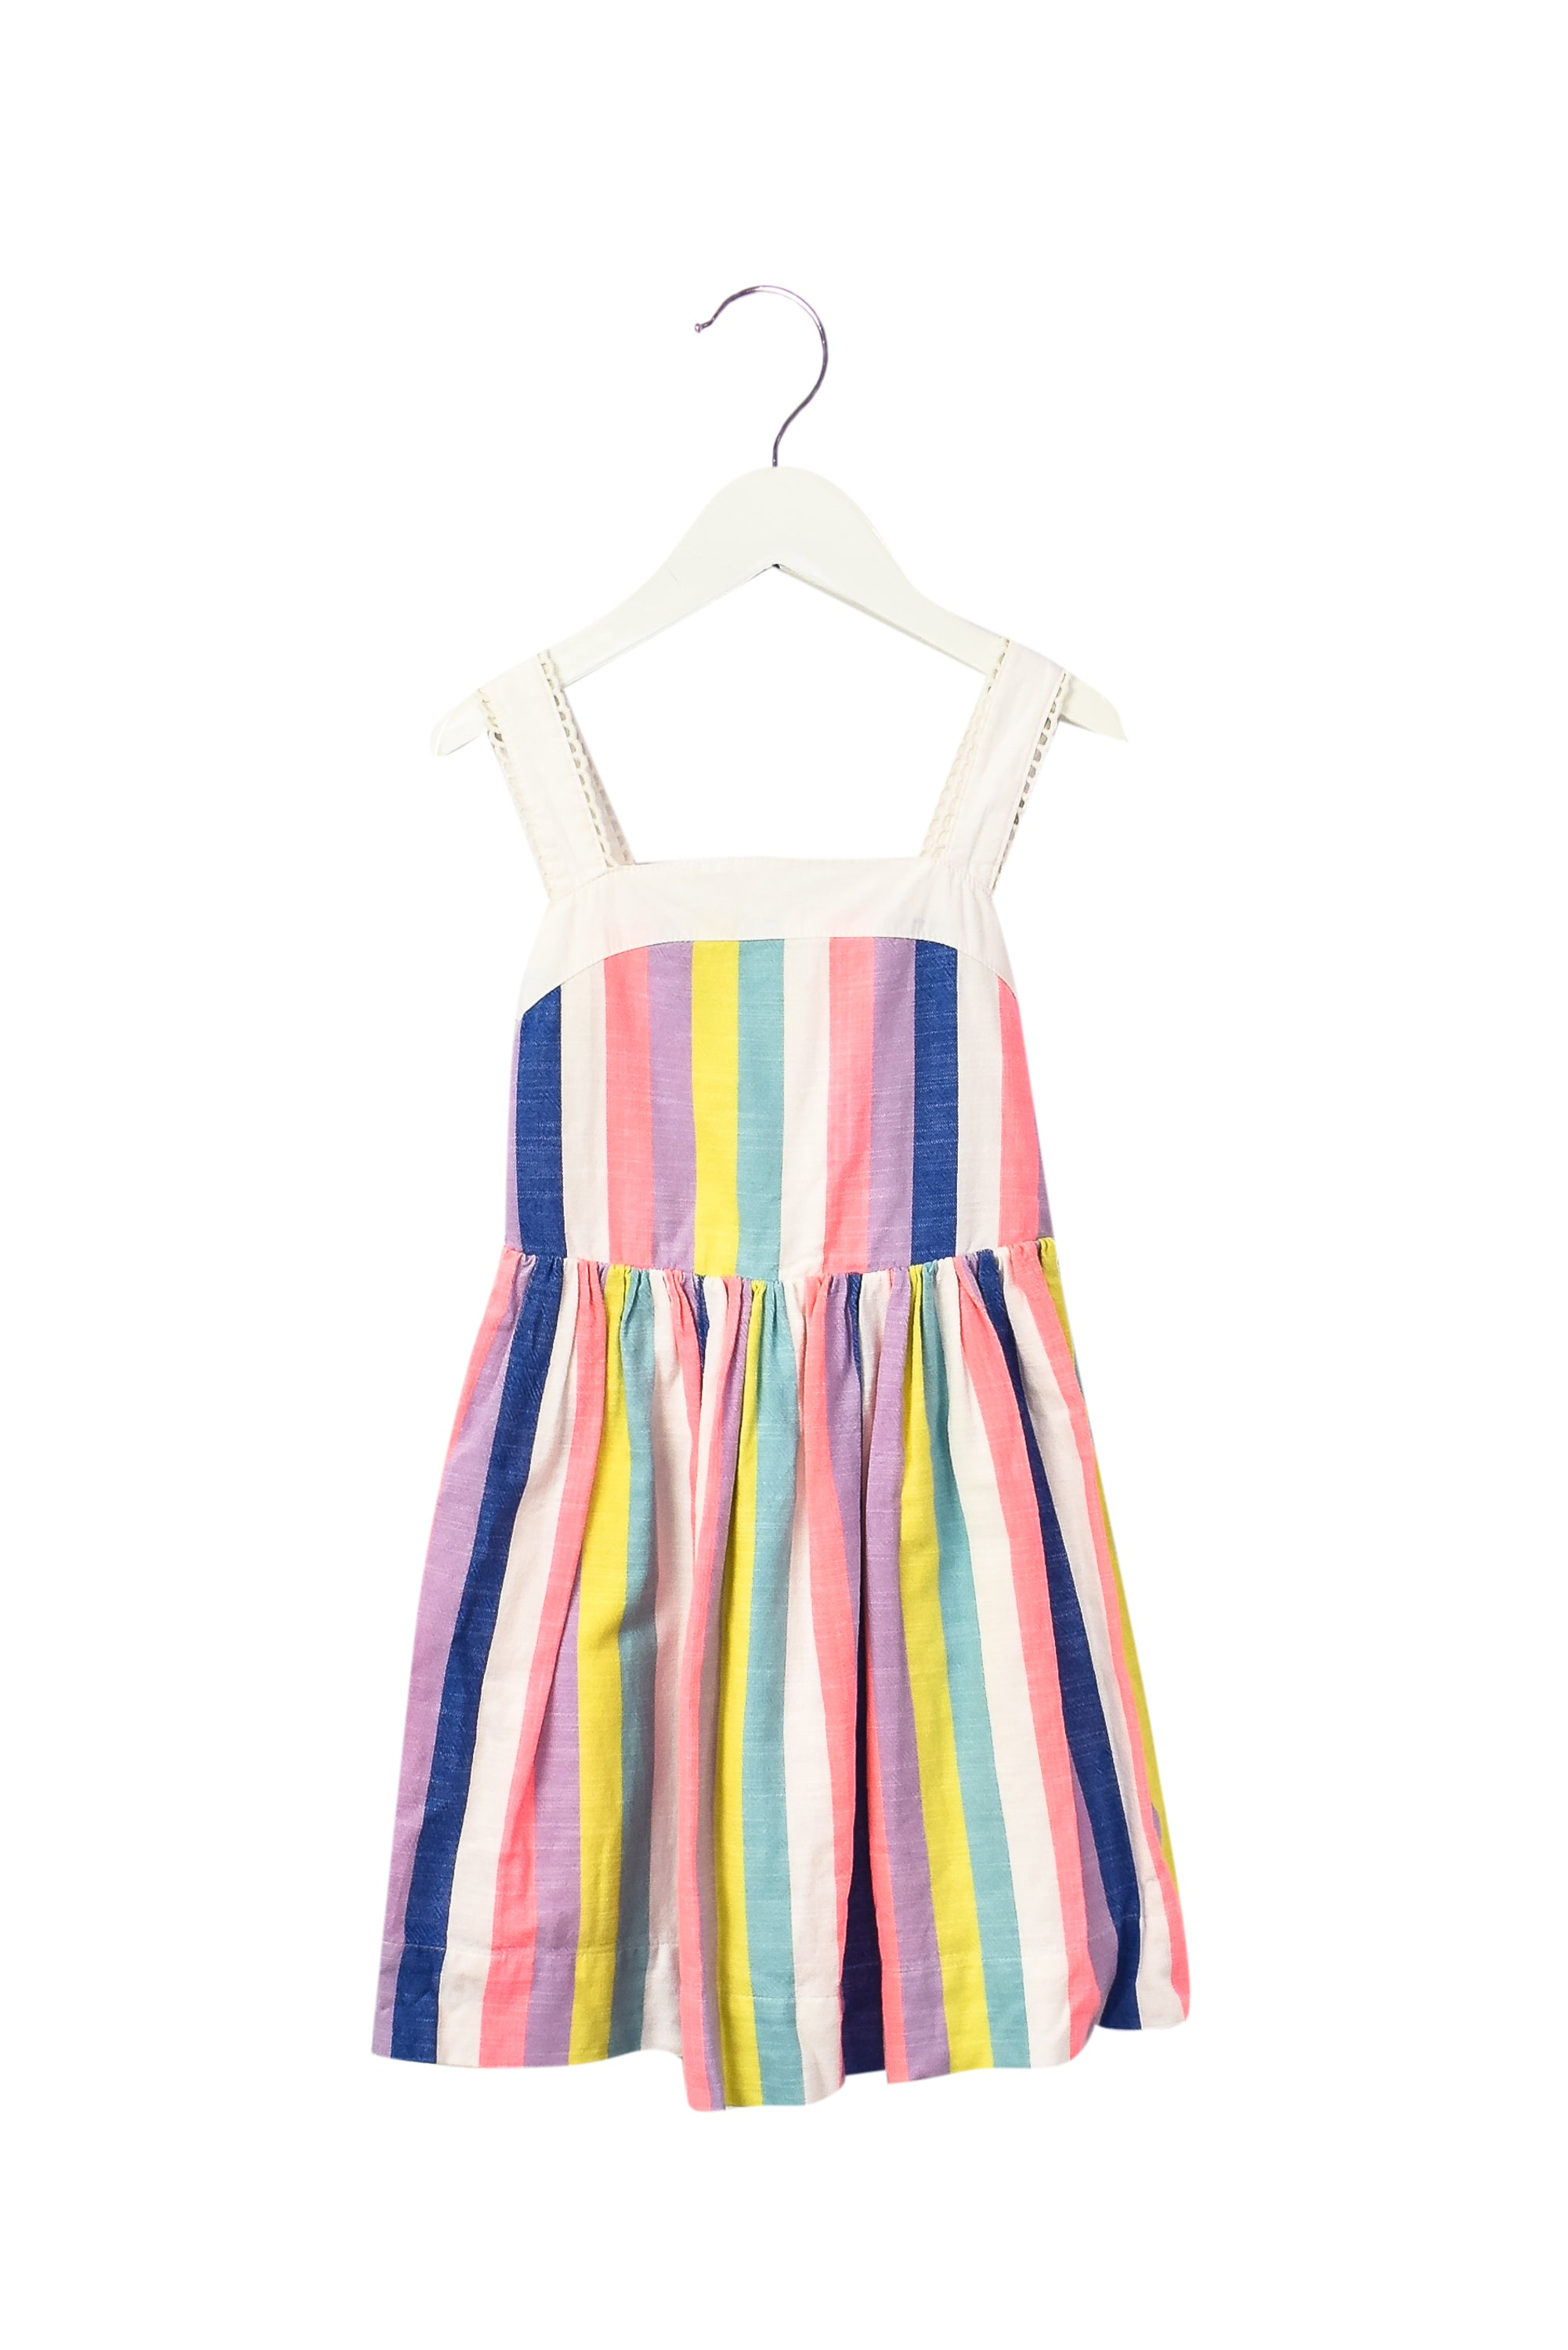 10033365 Boden Kids~Dress 5-6T at Retykle